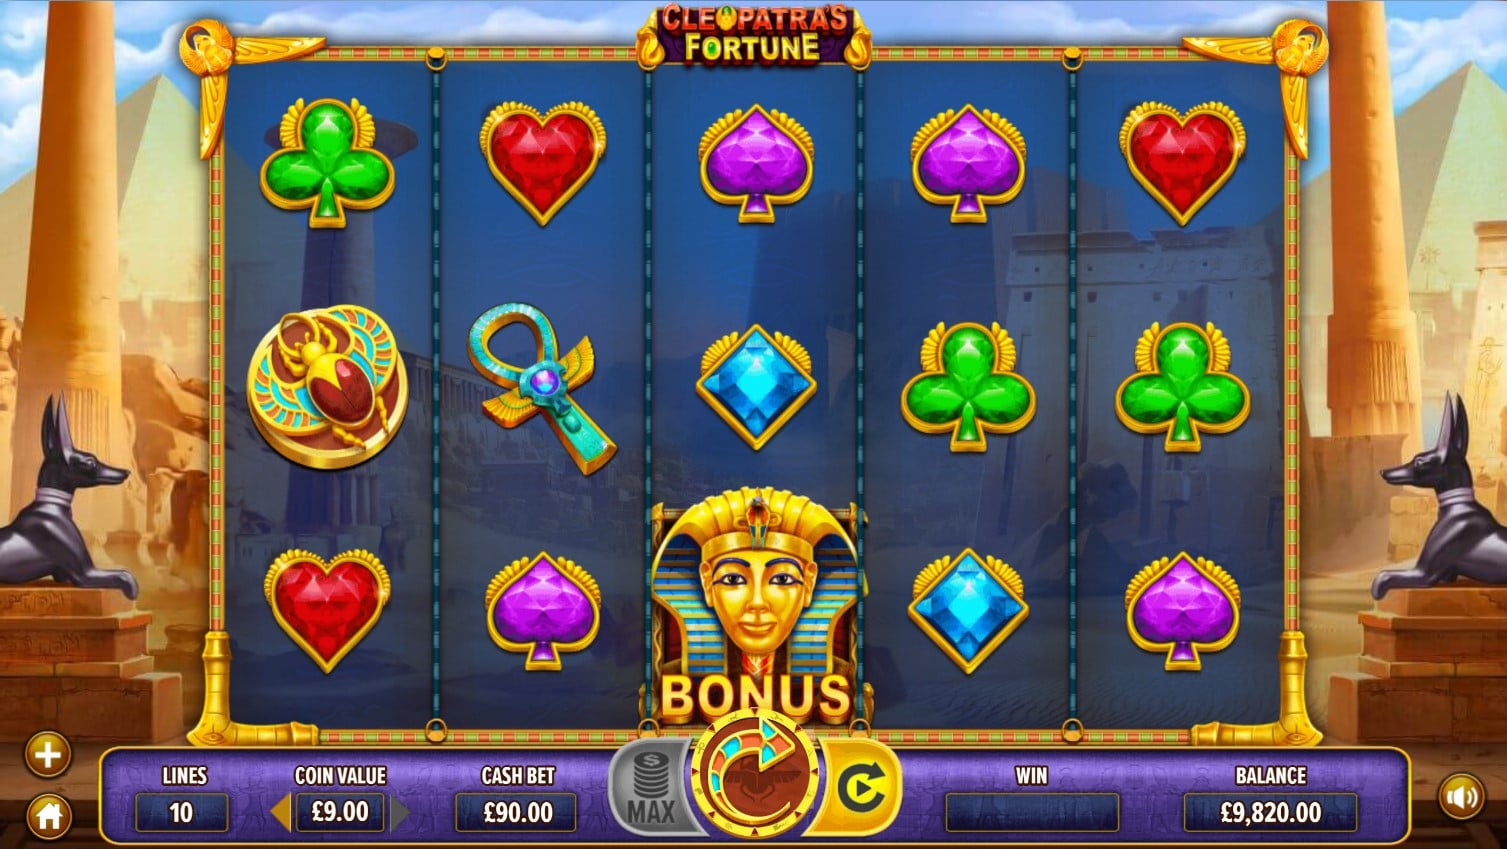 Cleopatra's Fortune Slot Review